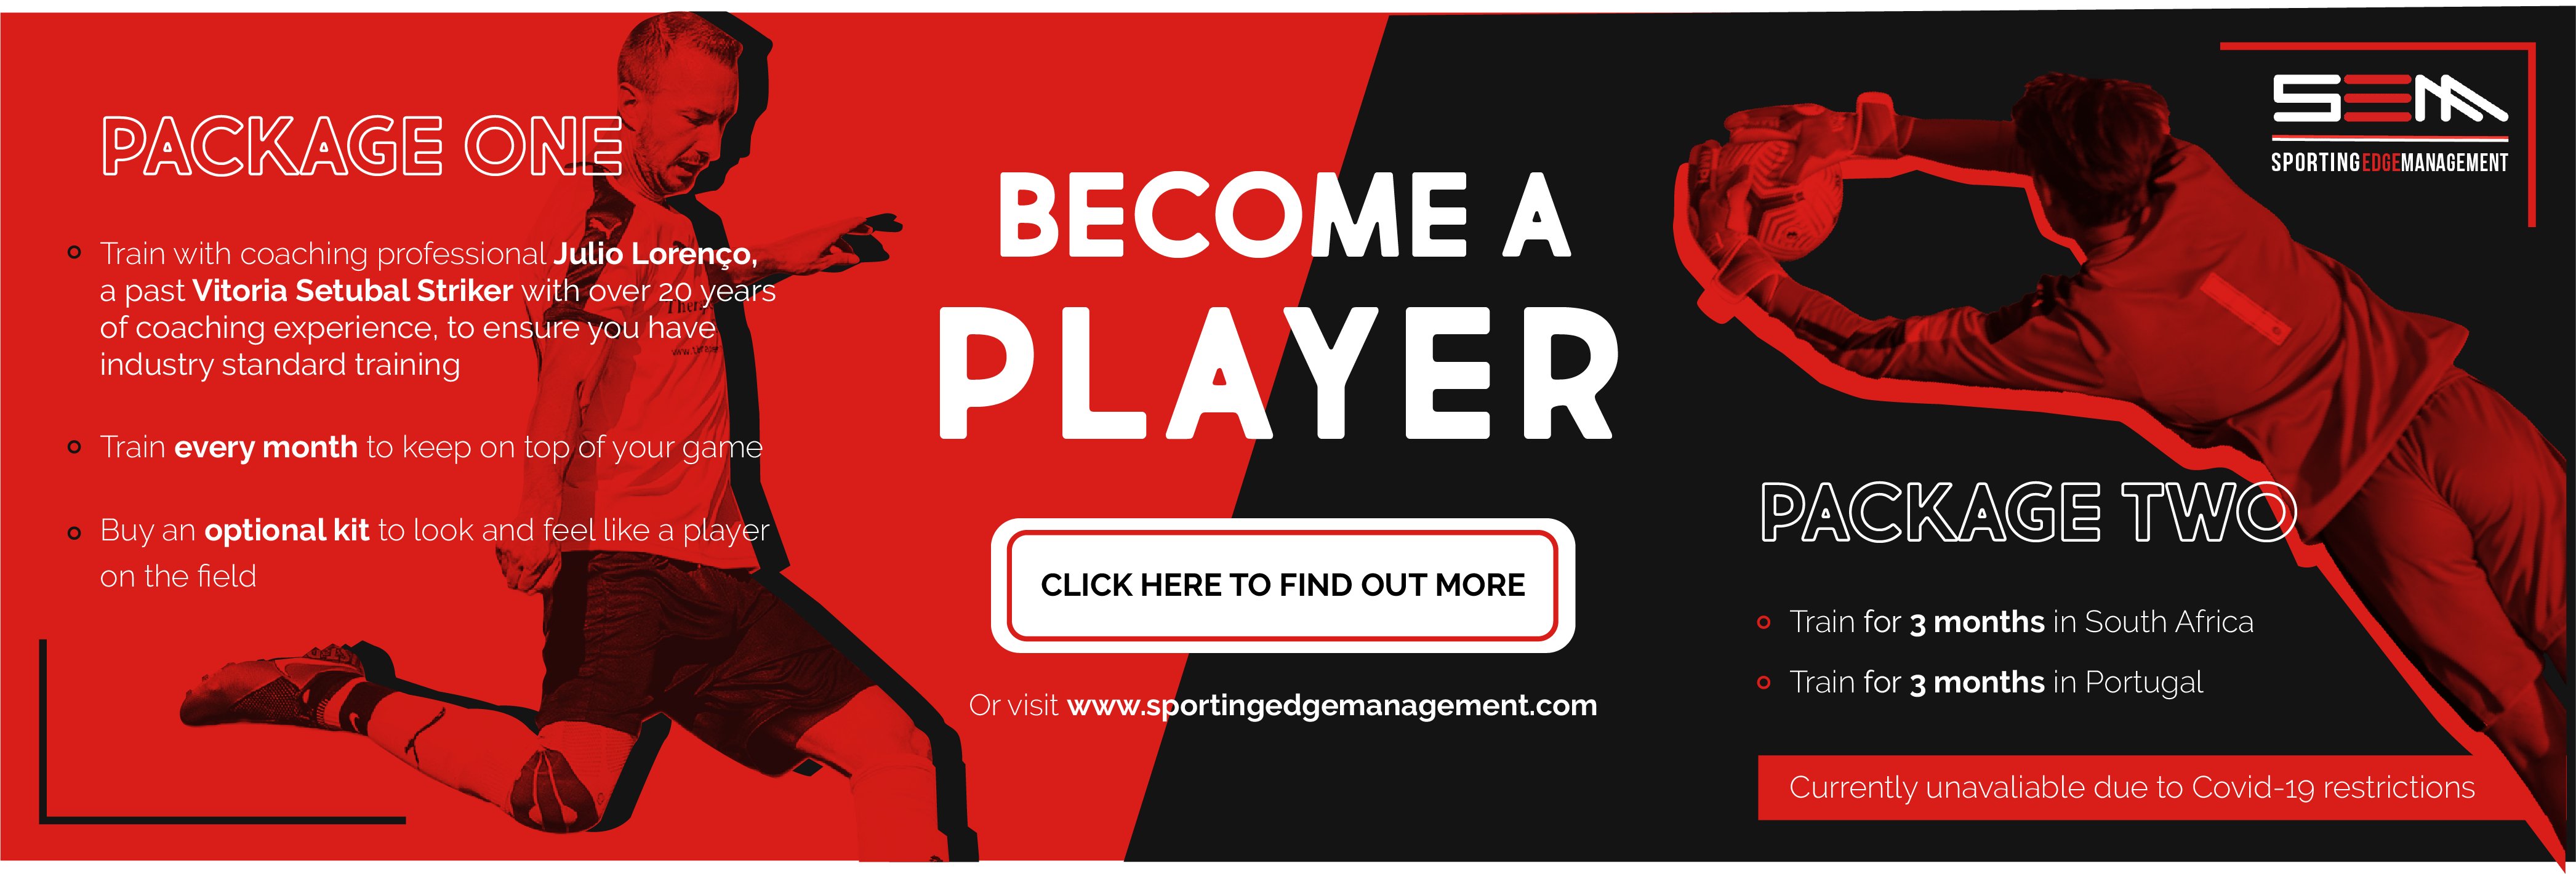 Become a Player